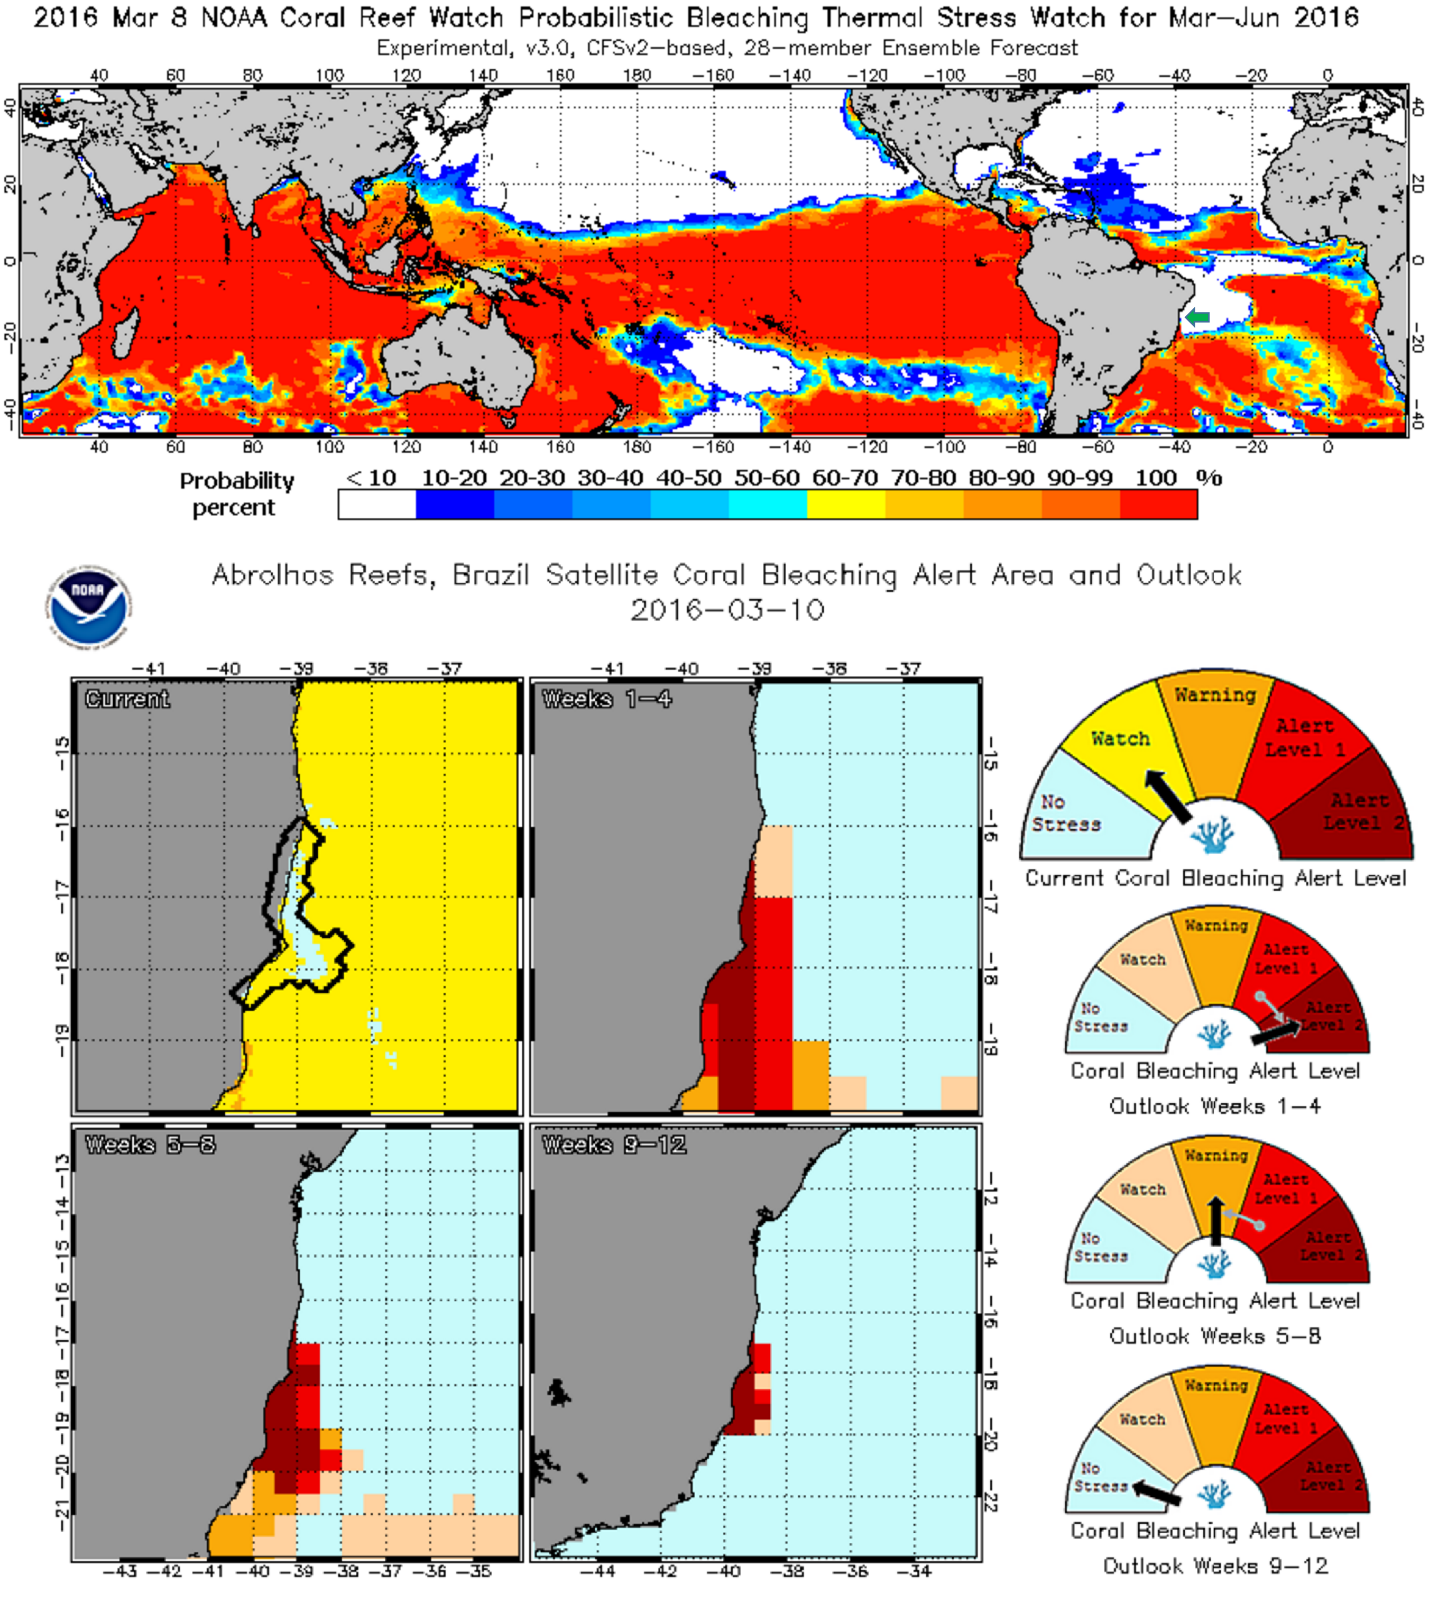 Figure 1: NOAA`s previsions on Coral Bleaching. Upper image: NOAA Coral Reef Watch Probabilistic / Bleaching Thermal Stress Watch. Probability of Thermal Stress is very high for most areas in the Tropics. Note that Southwest Atlantic and some parts of South Pacific are stability Islands with lower probability. Green Arrow shows approximate position of the Abrolhos Marine National Park. Lower Images: Satellite Bleaching Alert and Outlook. Abrolhos area is inside black lines in upper left square (Current). Note the stability island inside the area. Dark red and red patches starting in the next weeks in the area show that thermal stress is likely to hit the area. In Lower Right image (Weeks 9-12), Note that the Park is going to be in a Hot Spot. Images adapted from and available at 5 and 6